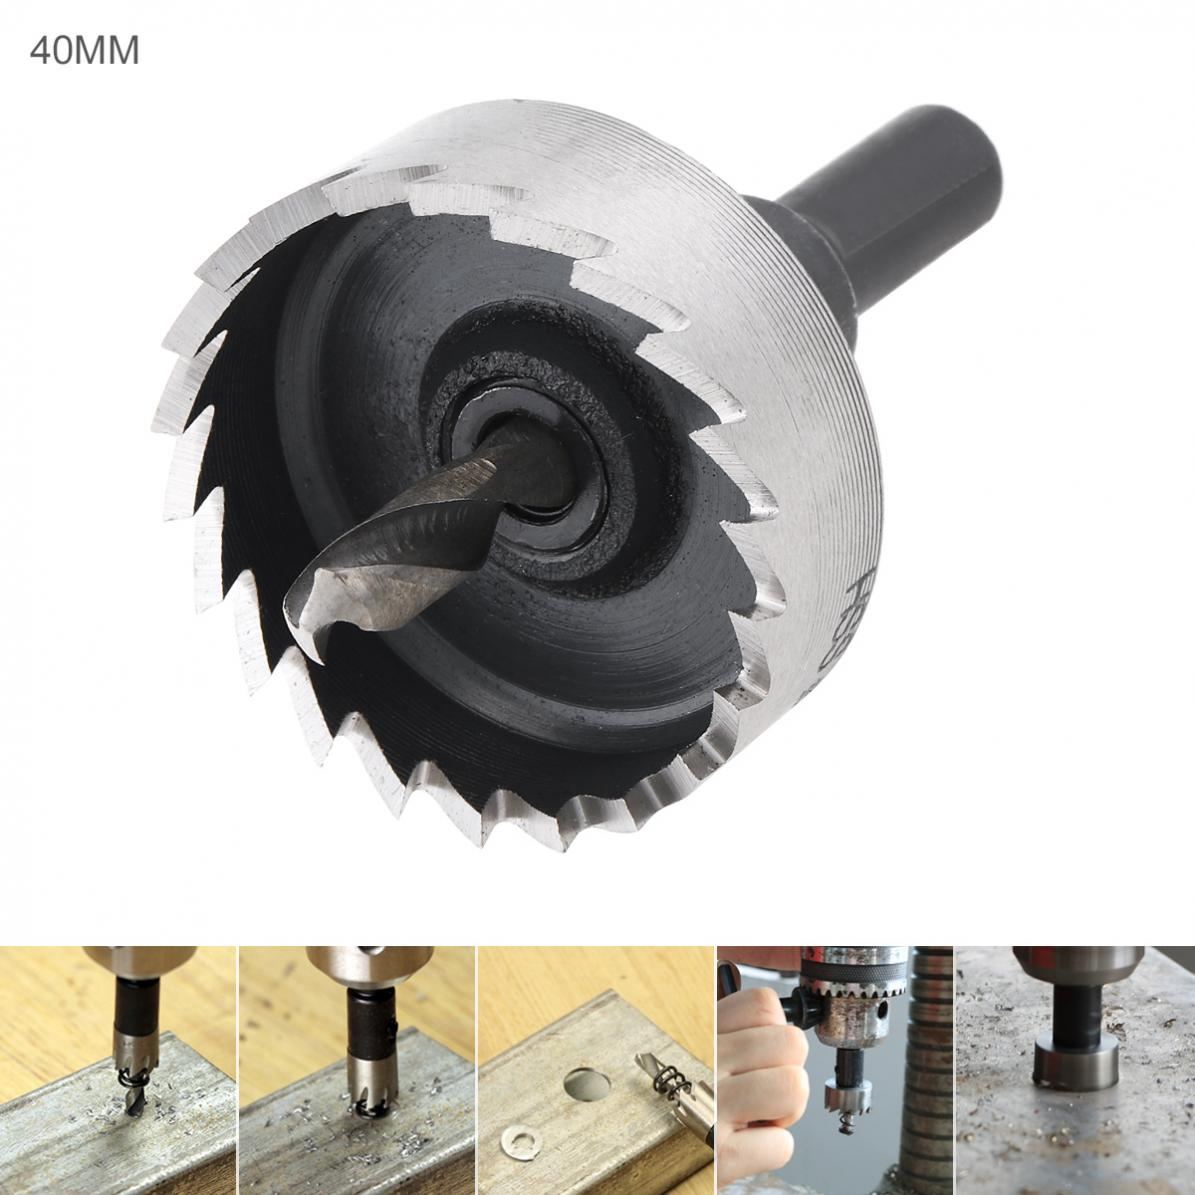 40mm Hole Saws HSS Hole Saw Cutter Drill Bits For Pistol Drills / Bench Drills / Magnetic Drills / Air Gun Drills